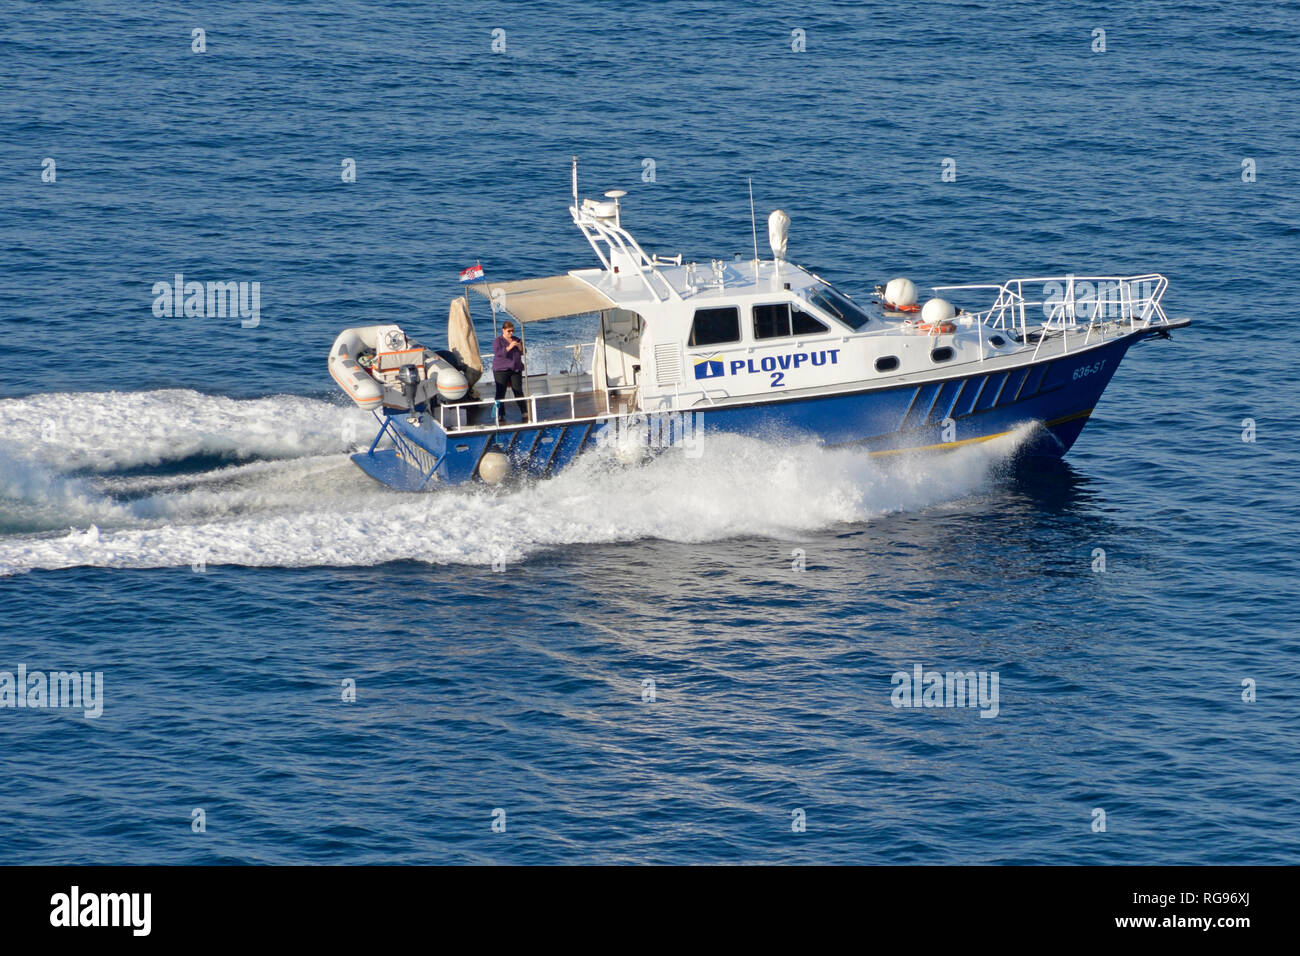 High speed Plovput motor boat seen from cruise ship returns to base after assisting liner captain in departing Split Croatia Dalmatian Adriatic Sea - Stock Image